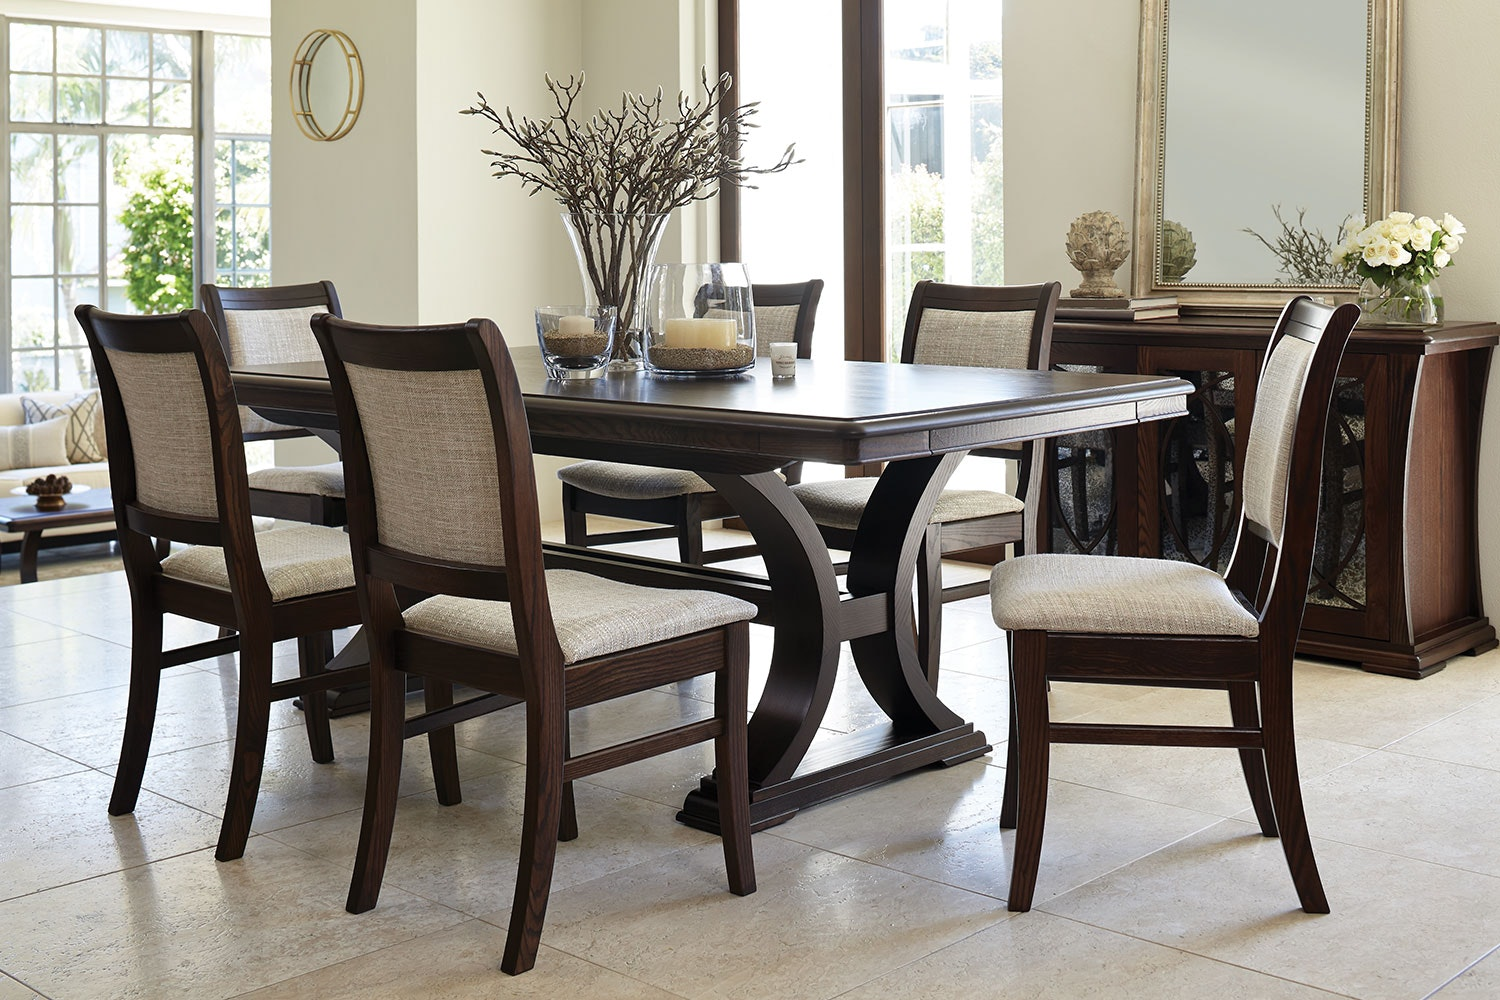 Vienna Luxe Dining Table by Sorenson Furniture